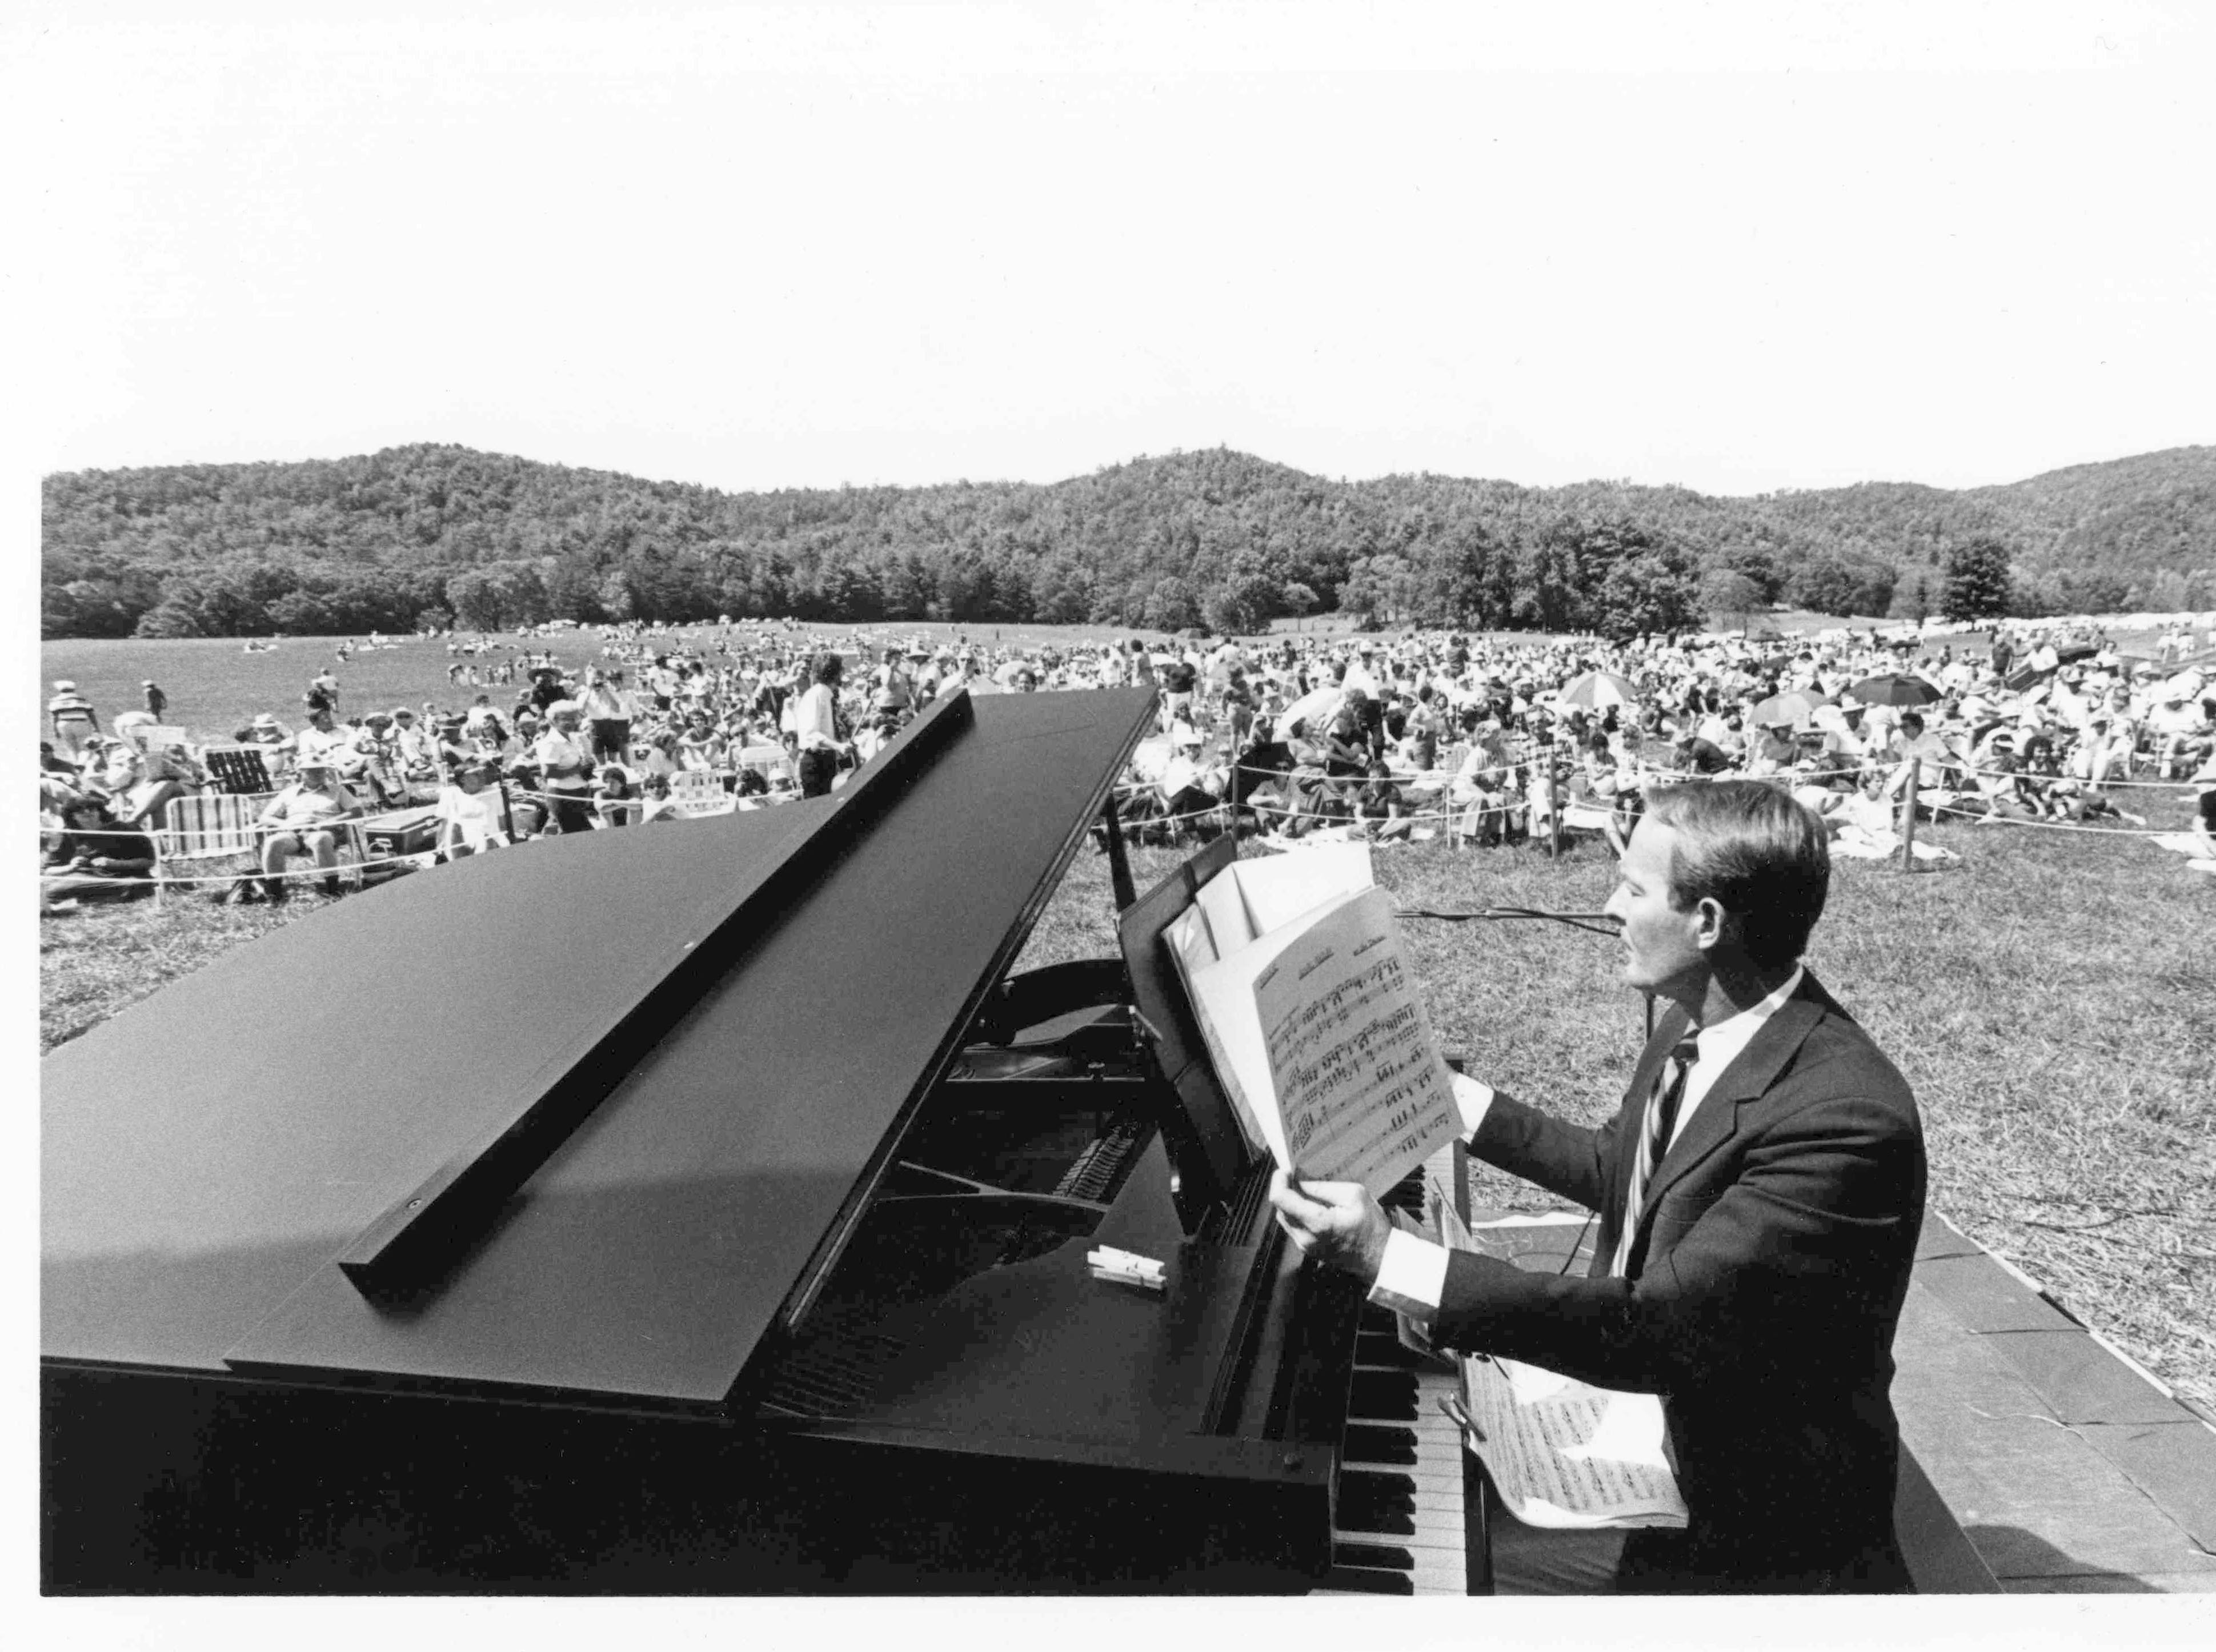 Gov. Lamar Alexander performs during the 50th anniversary celebration of the Great Smoky Mountains Park in June 1984 at Cades Cove.